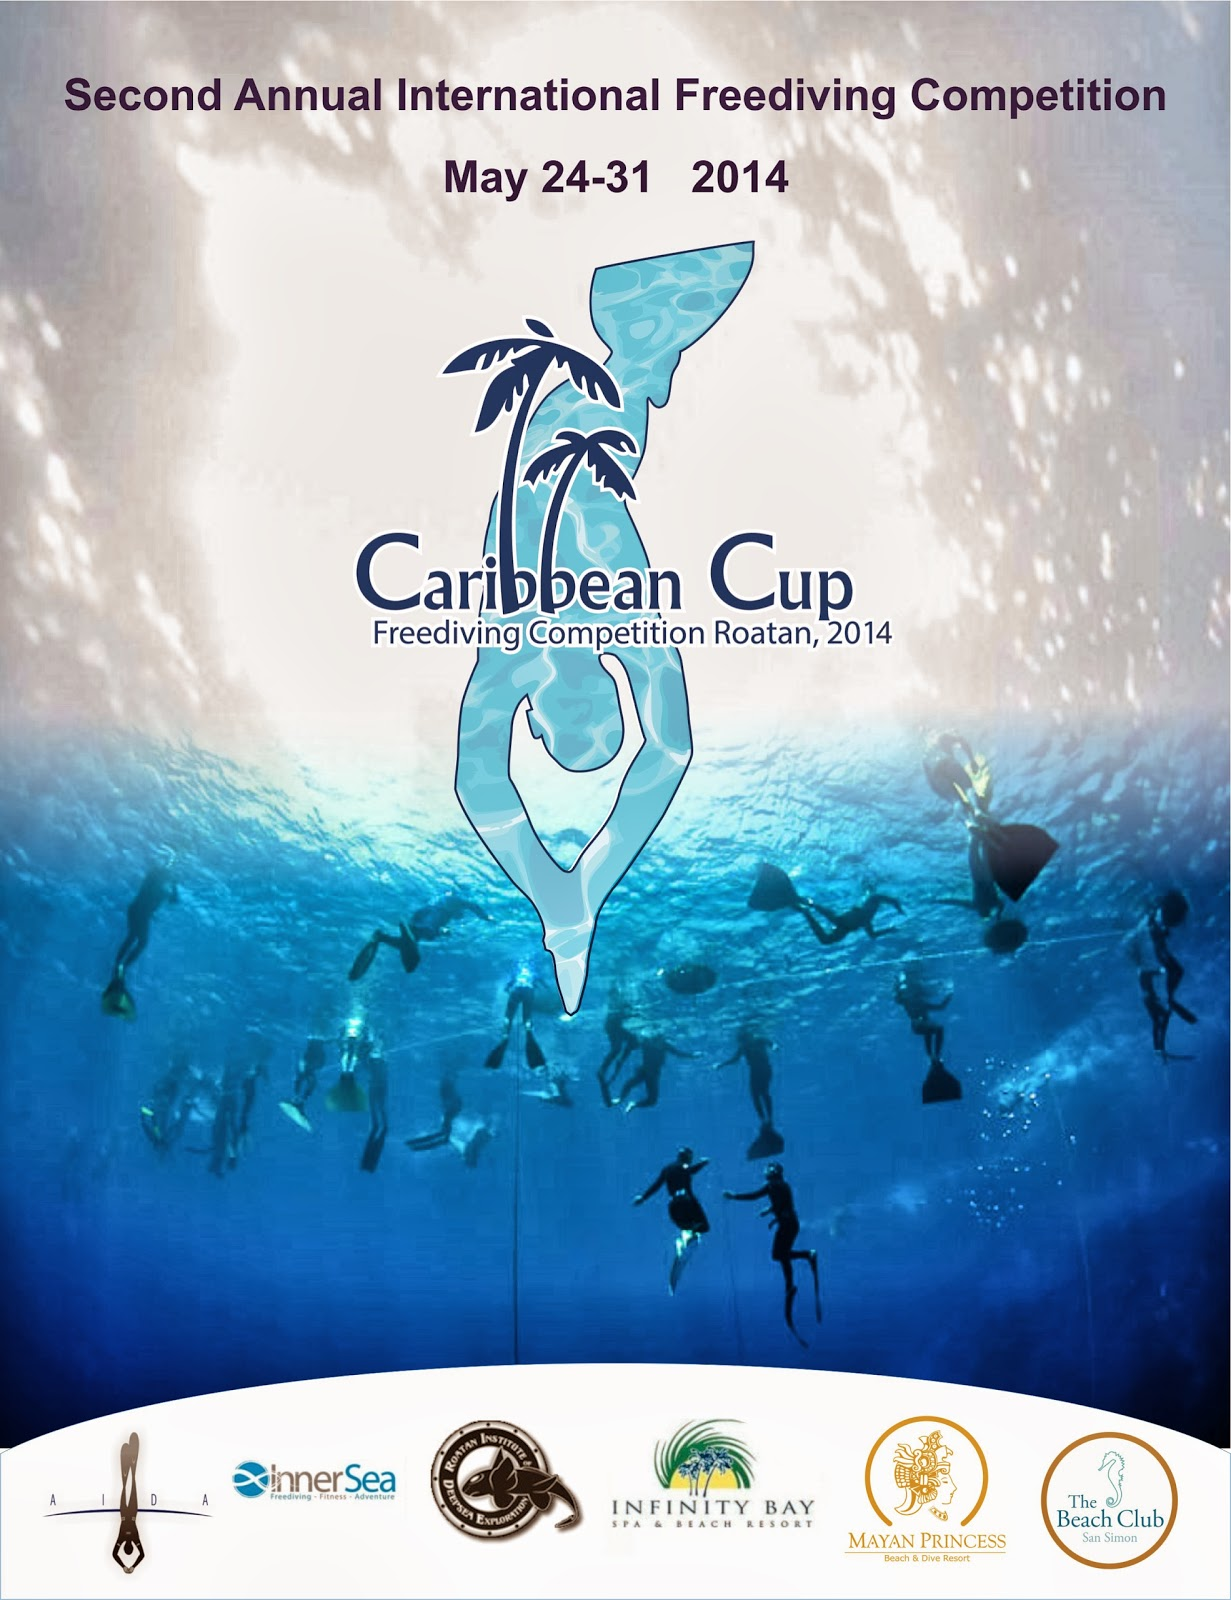 Travel 2 The Caribbean Blog: Caribbean Freediving Cup In